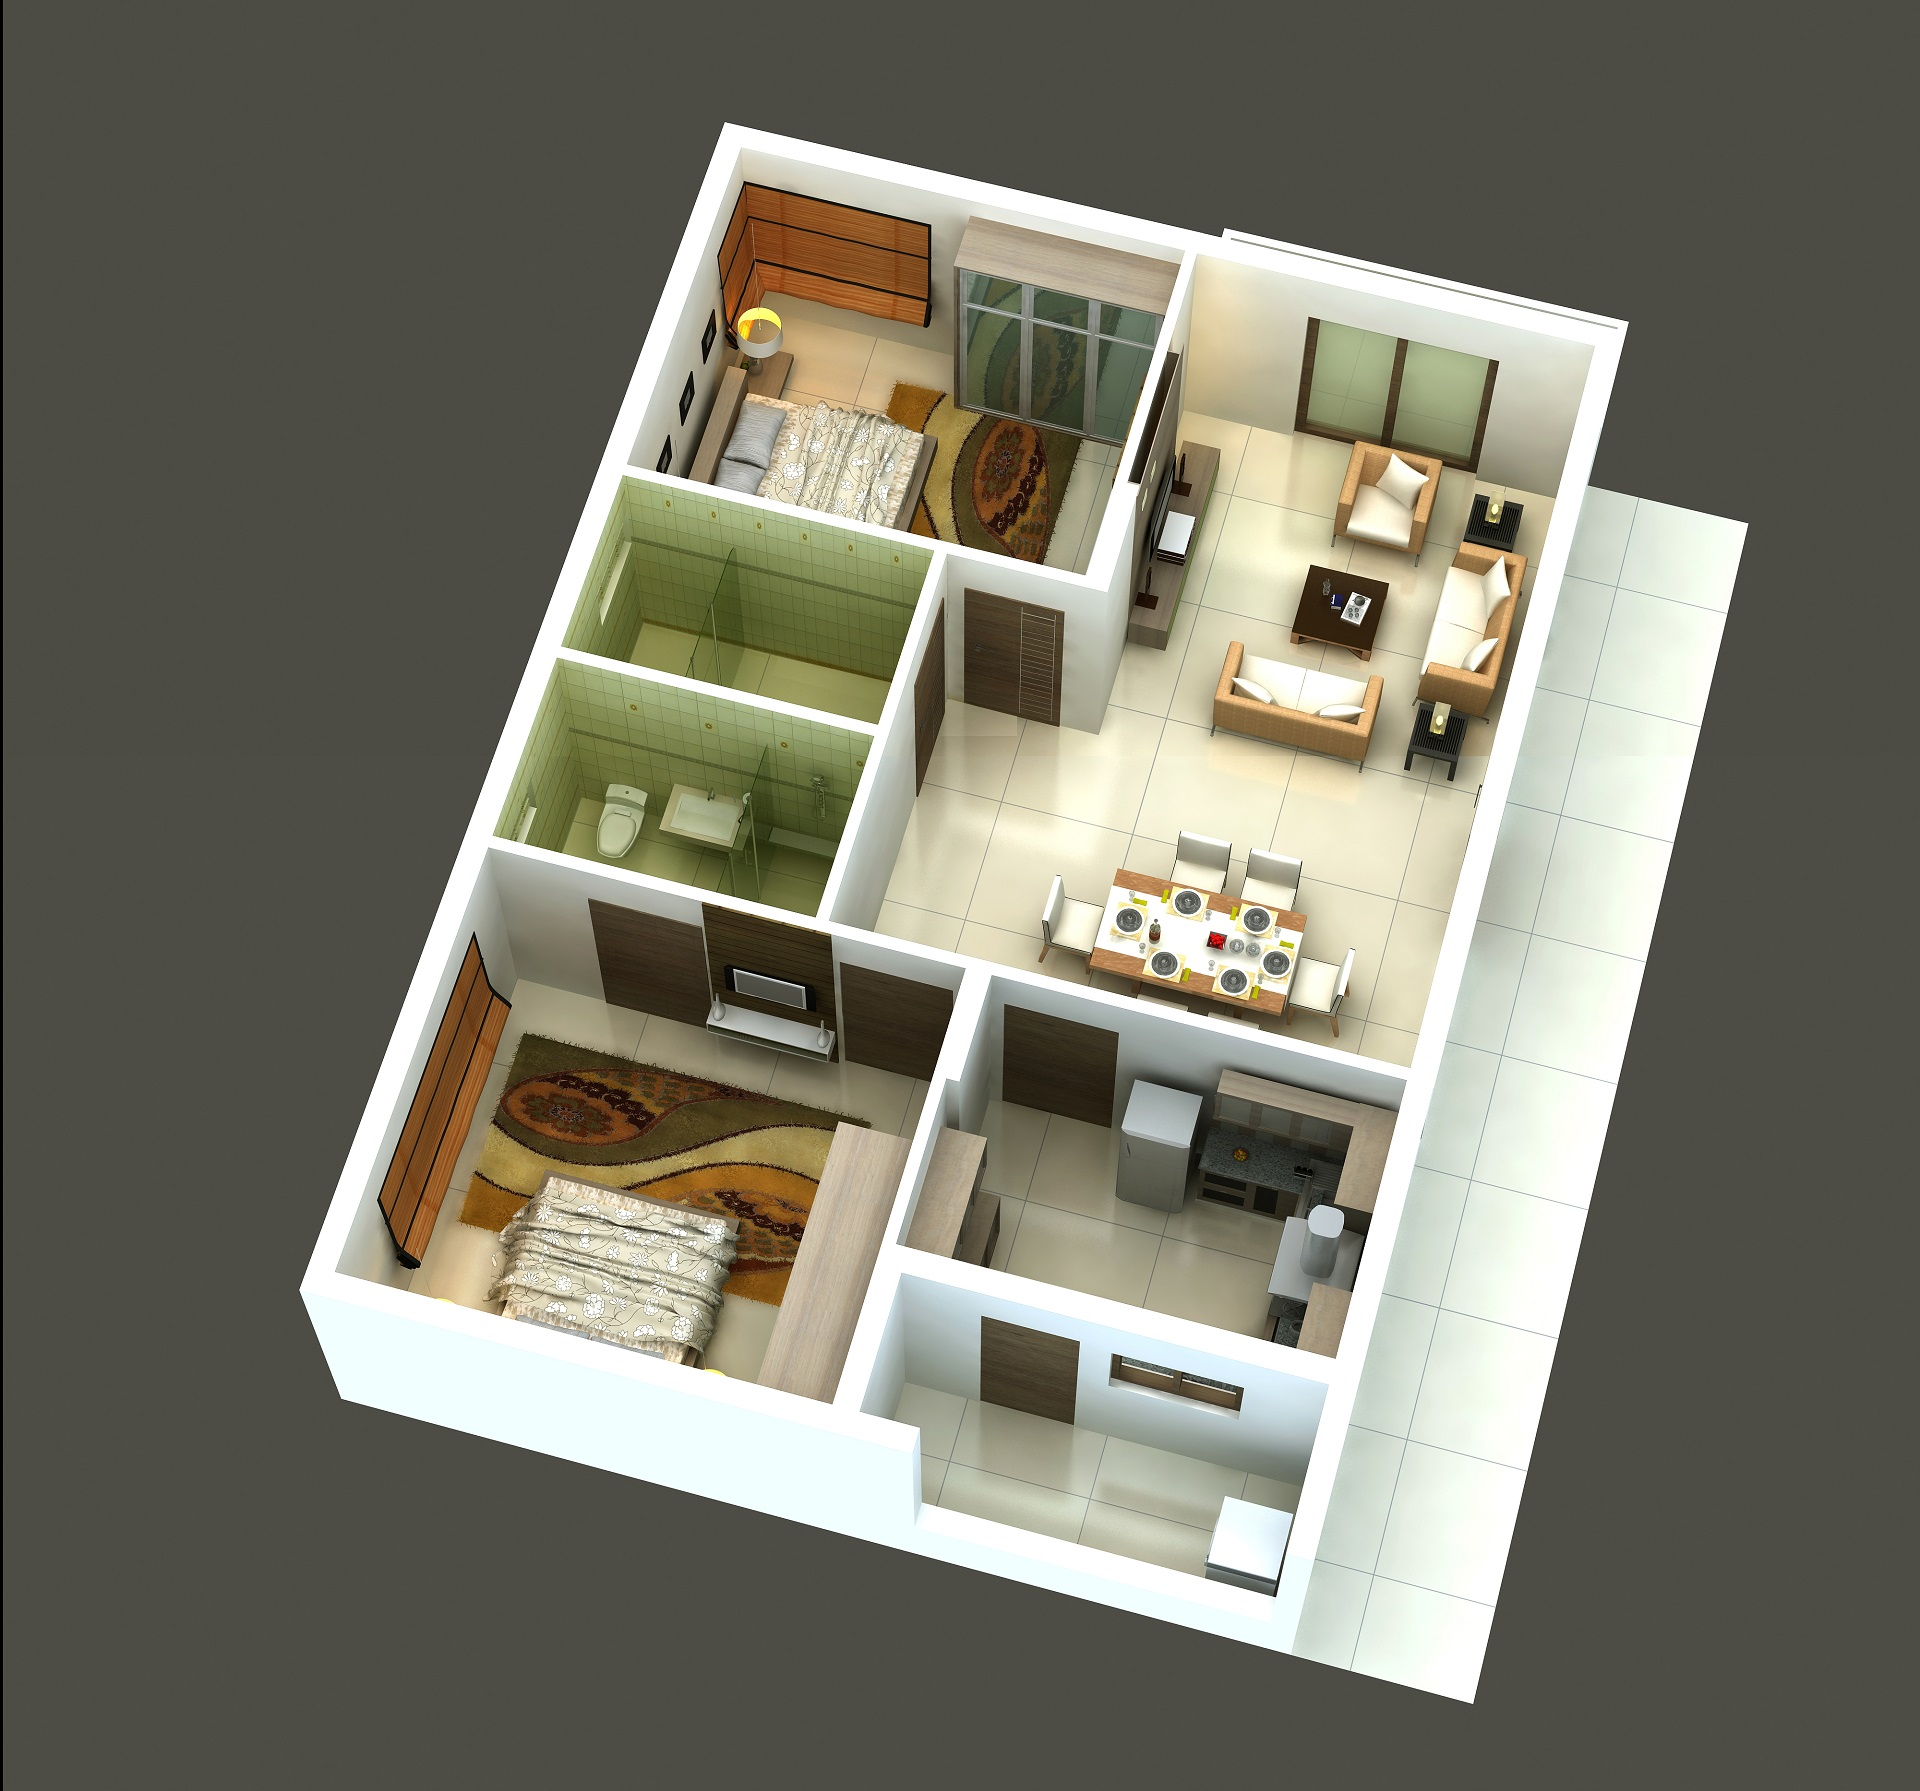 ar-concepts-emami-apartment-residential-east-double-bedroom-image-a